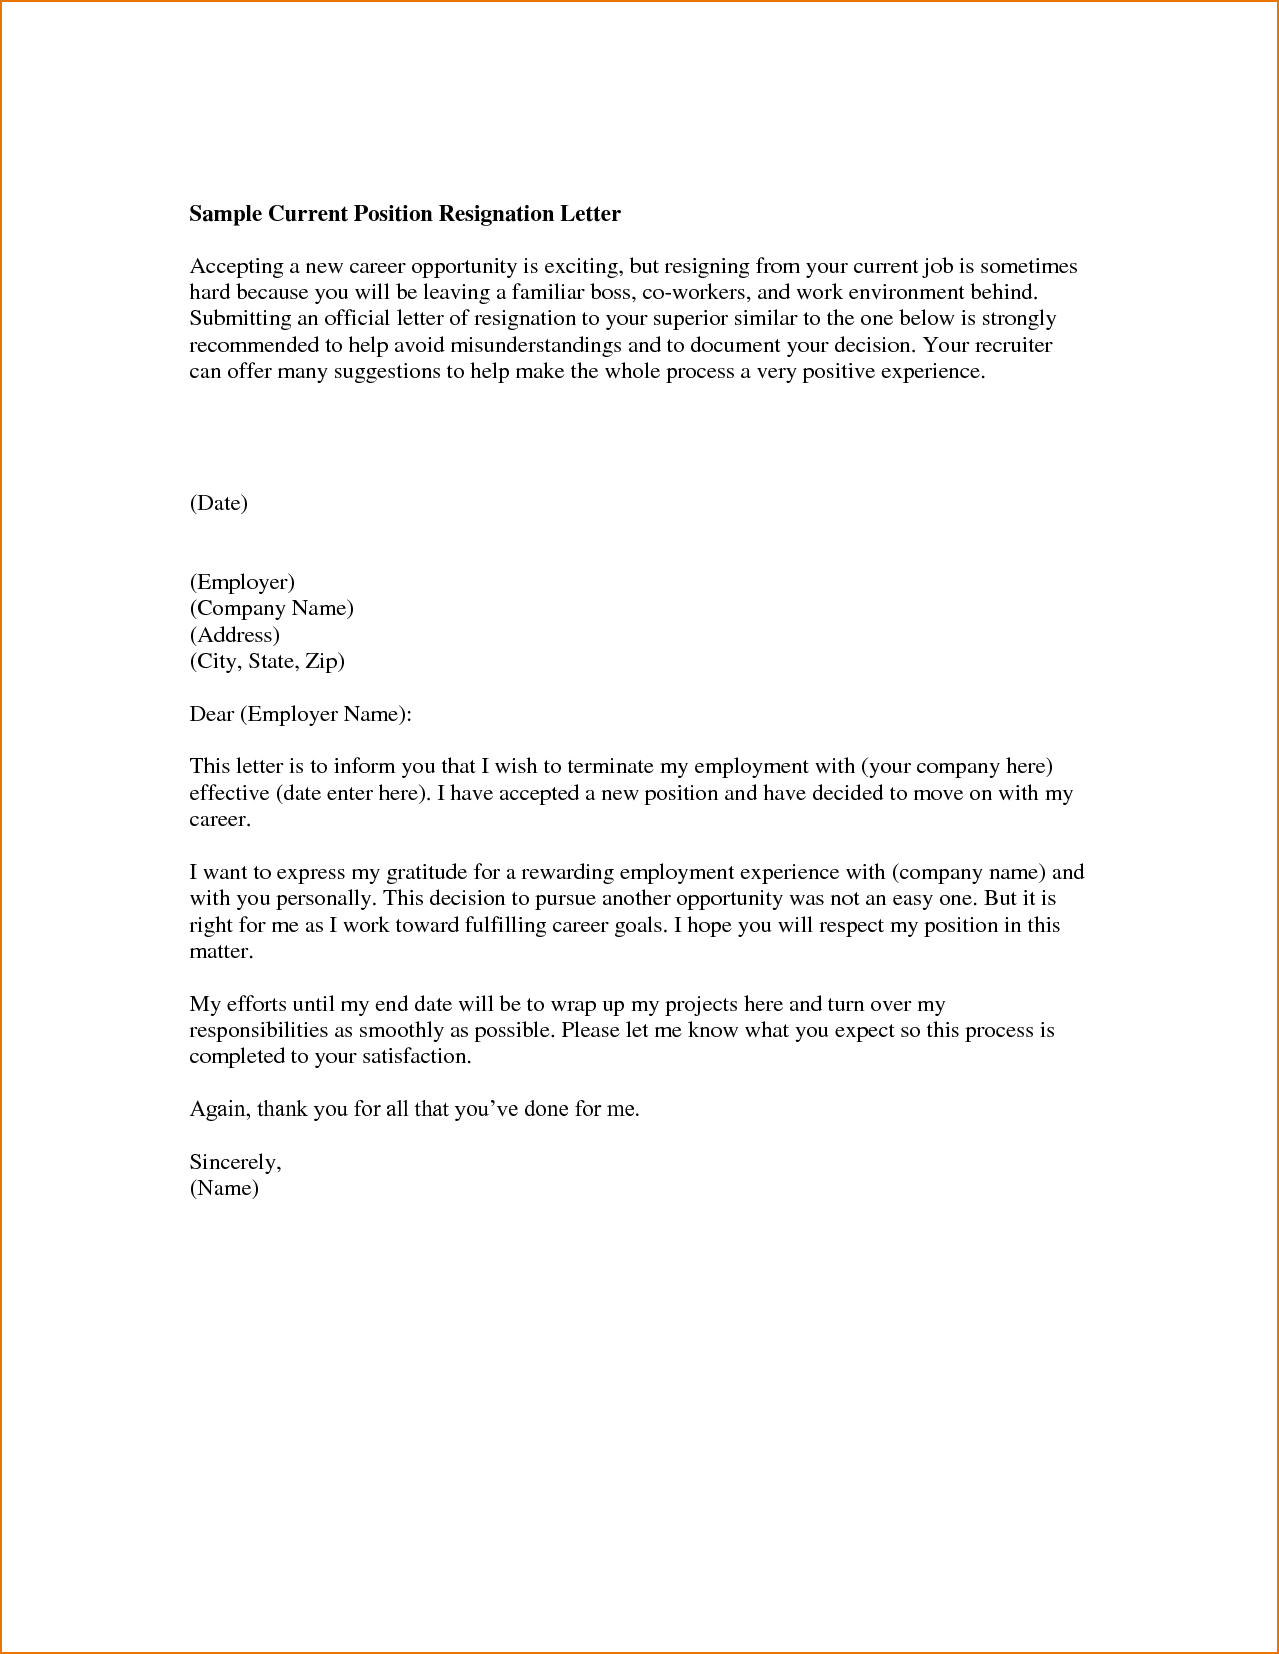 Employment application rejection letters letters organized by employment application rejection letters letters organized by category and topic find the right words expocarfo